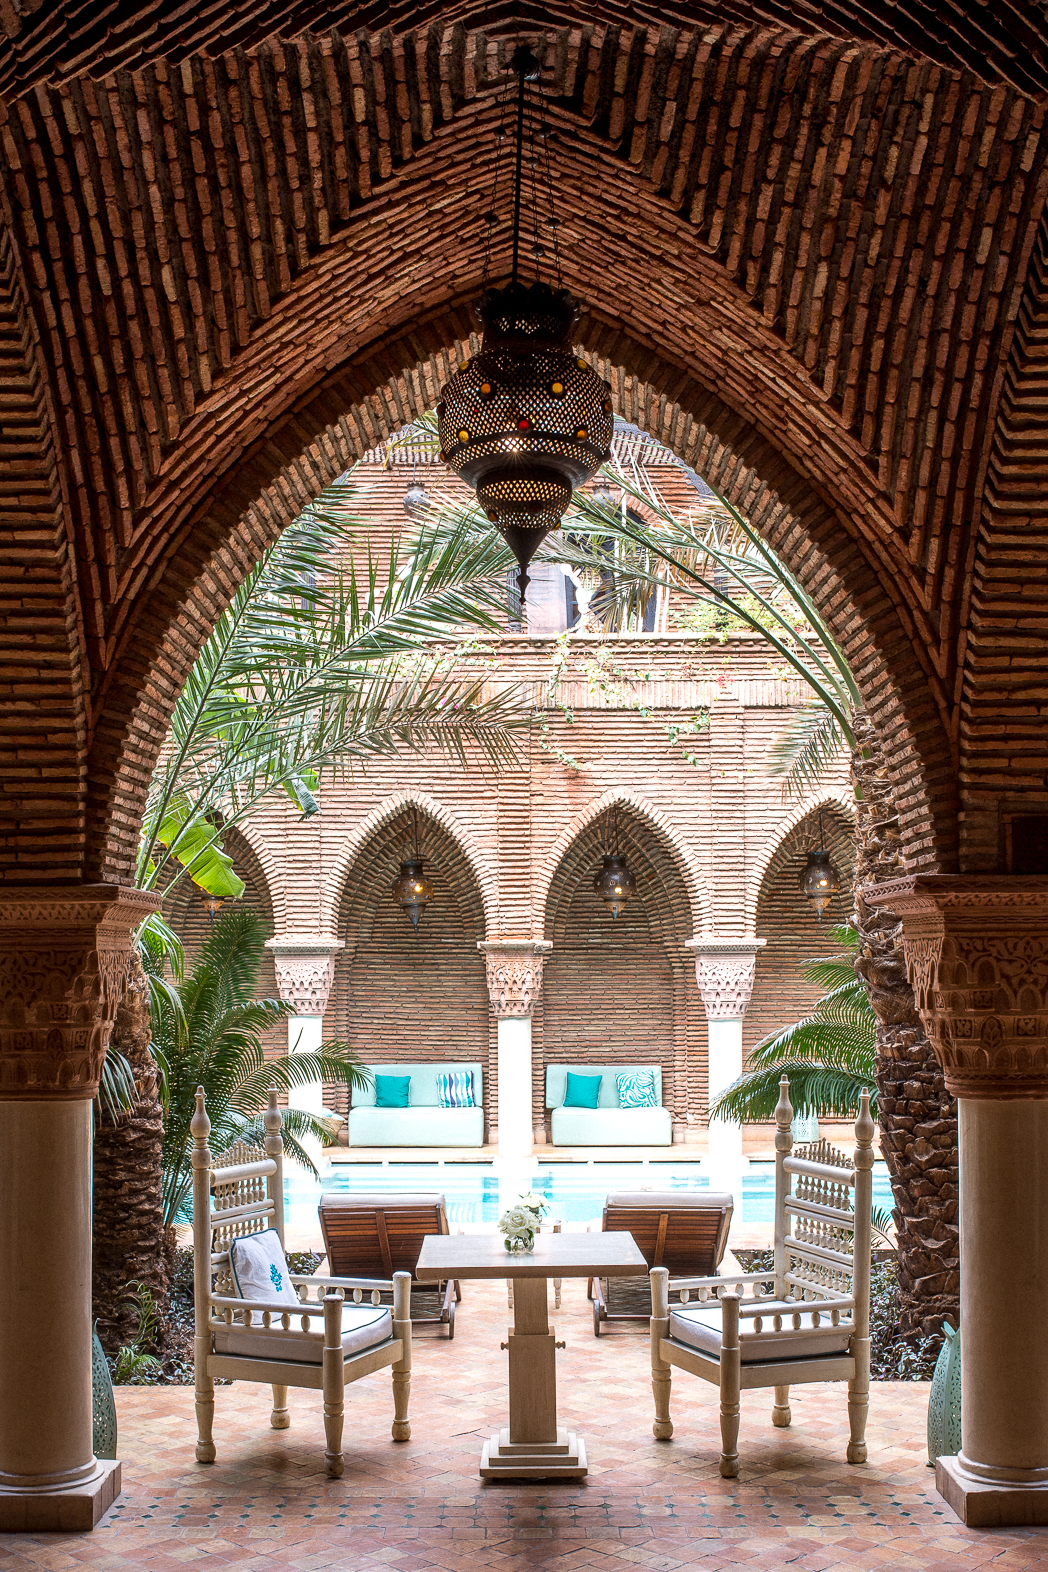 STACIE FLINNER La Sultana Marrakech City Guide-73.jpg